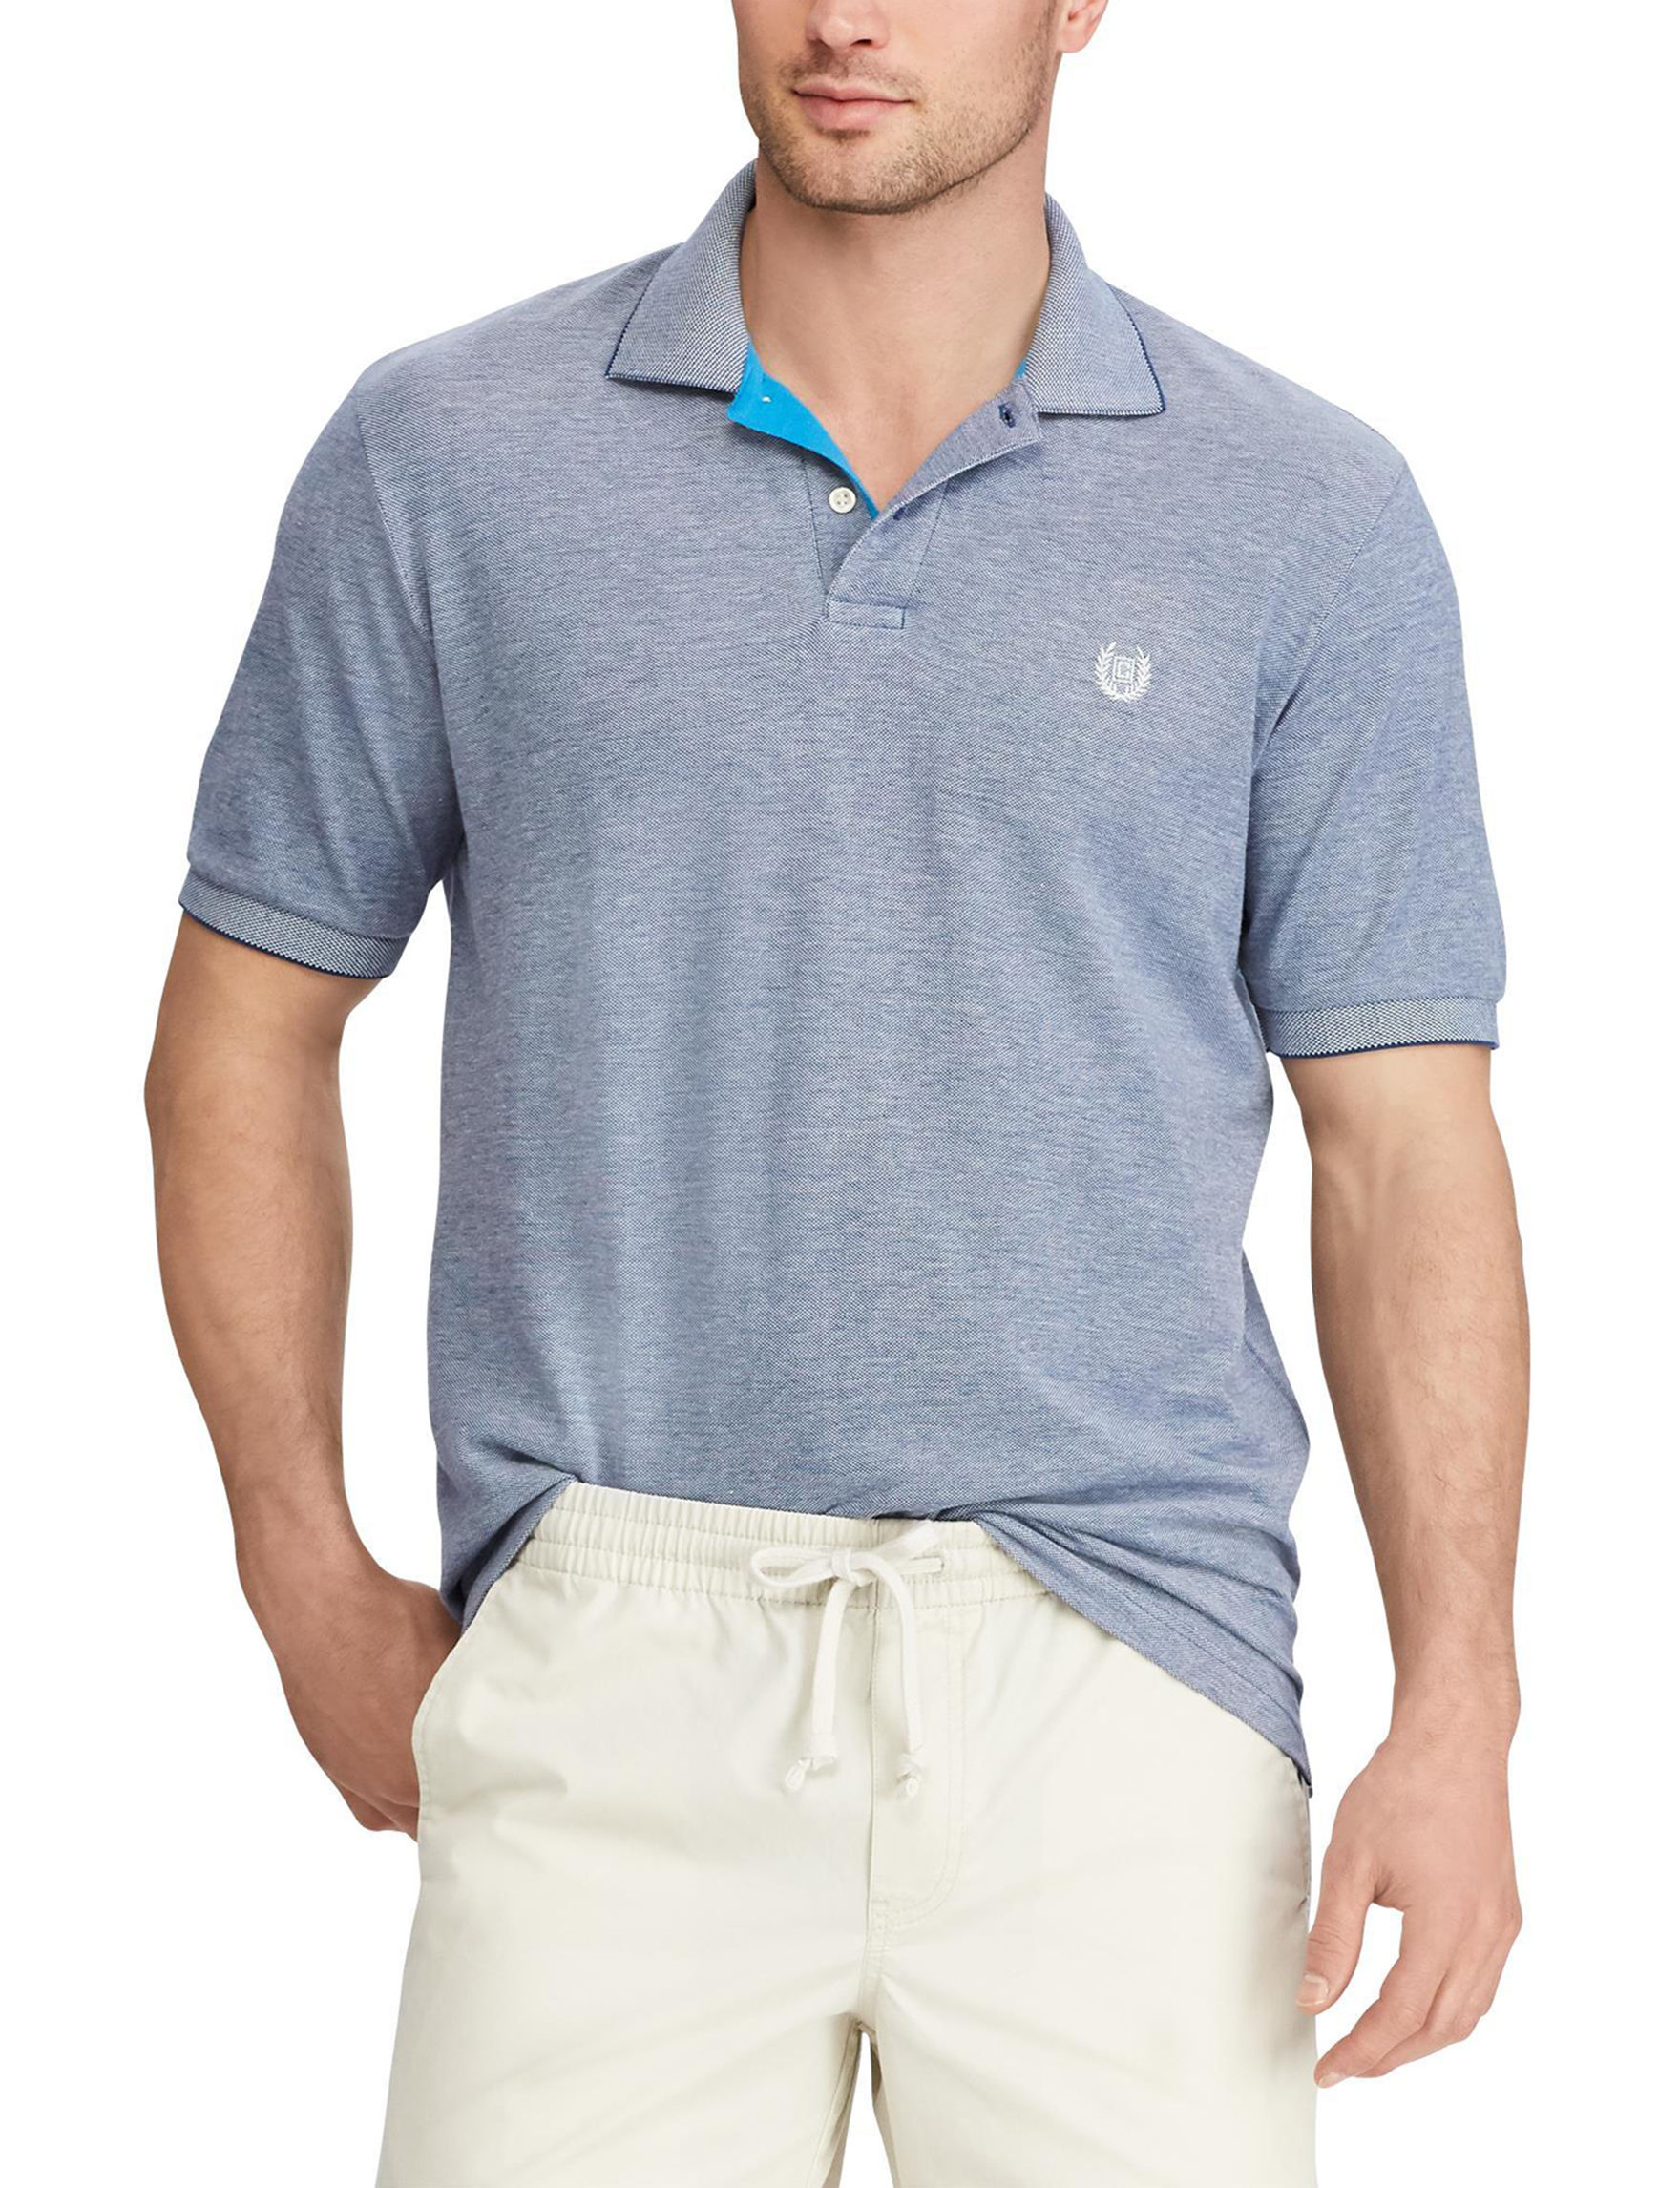 Chaps Navy Polos